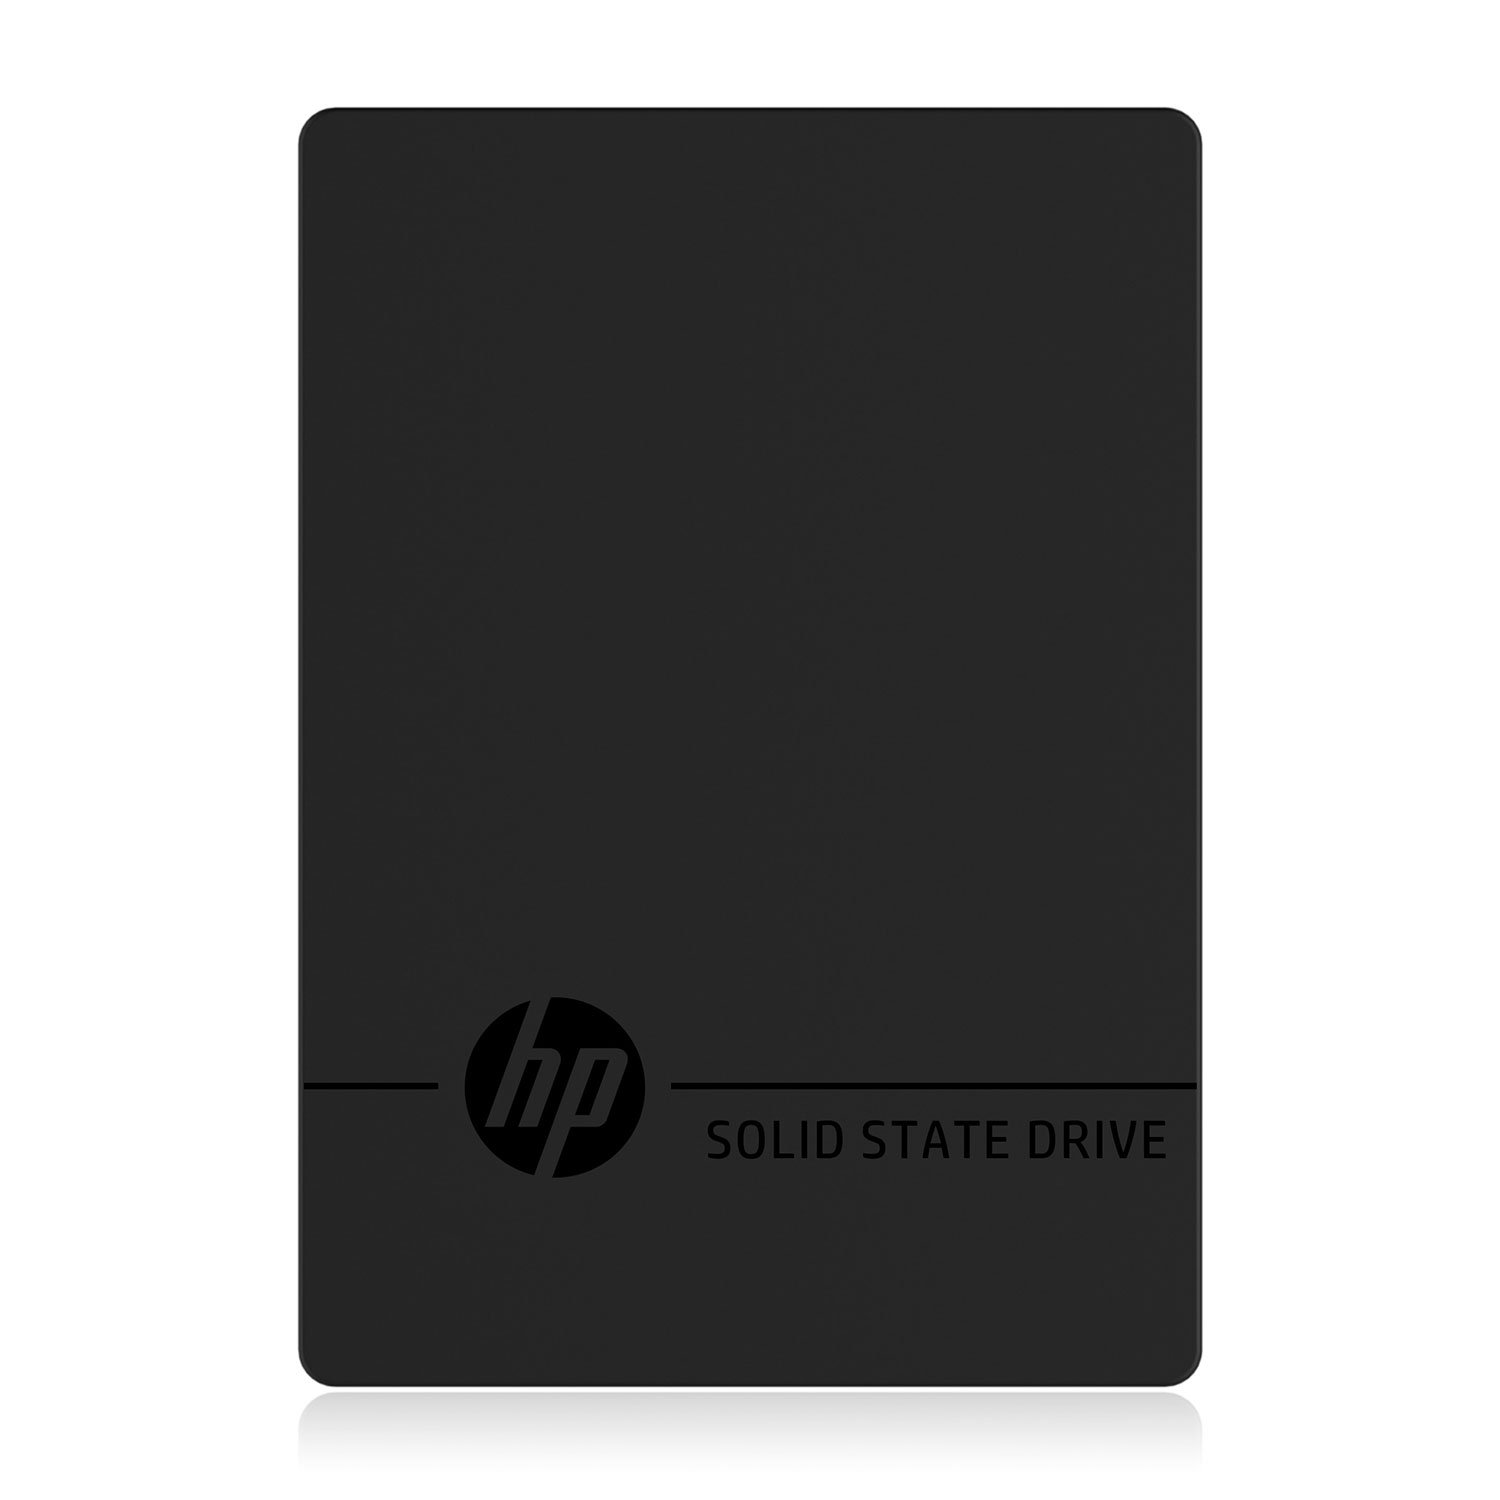 HP P600 500GB Portable USB 3.1 External SSD 3XJ07AA#ABC by HP (Image #3)